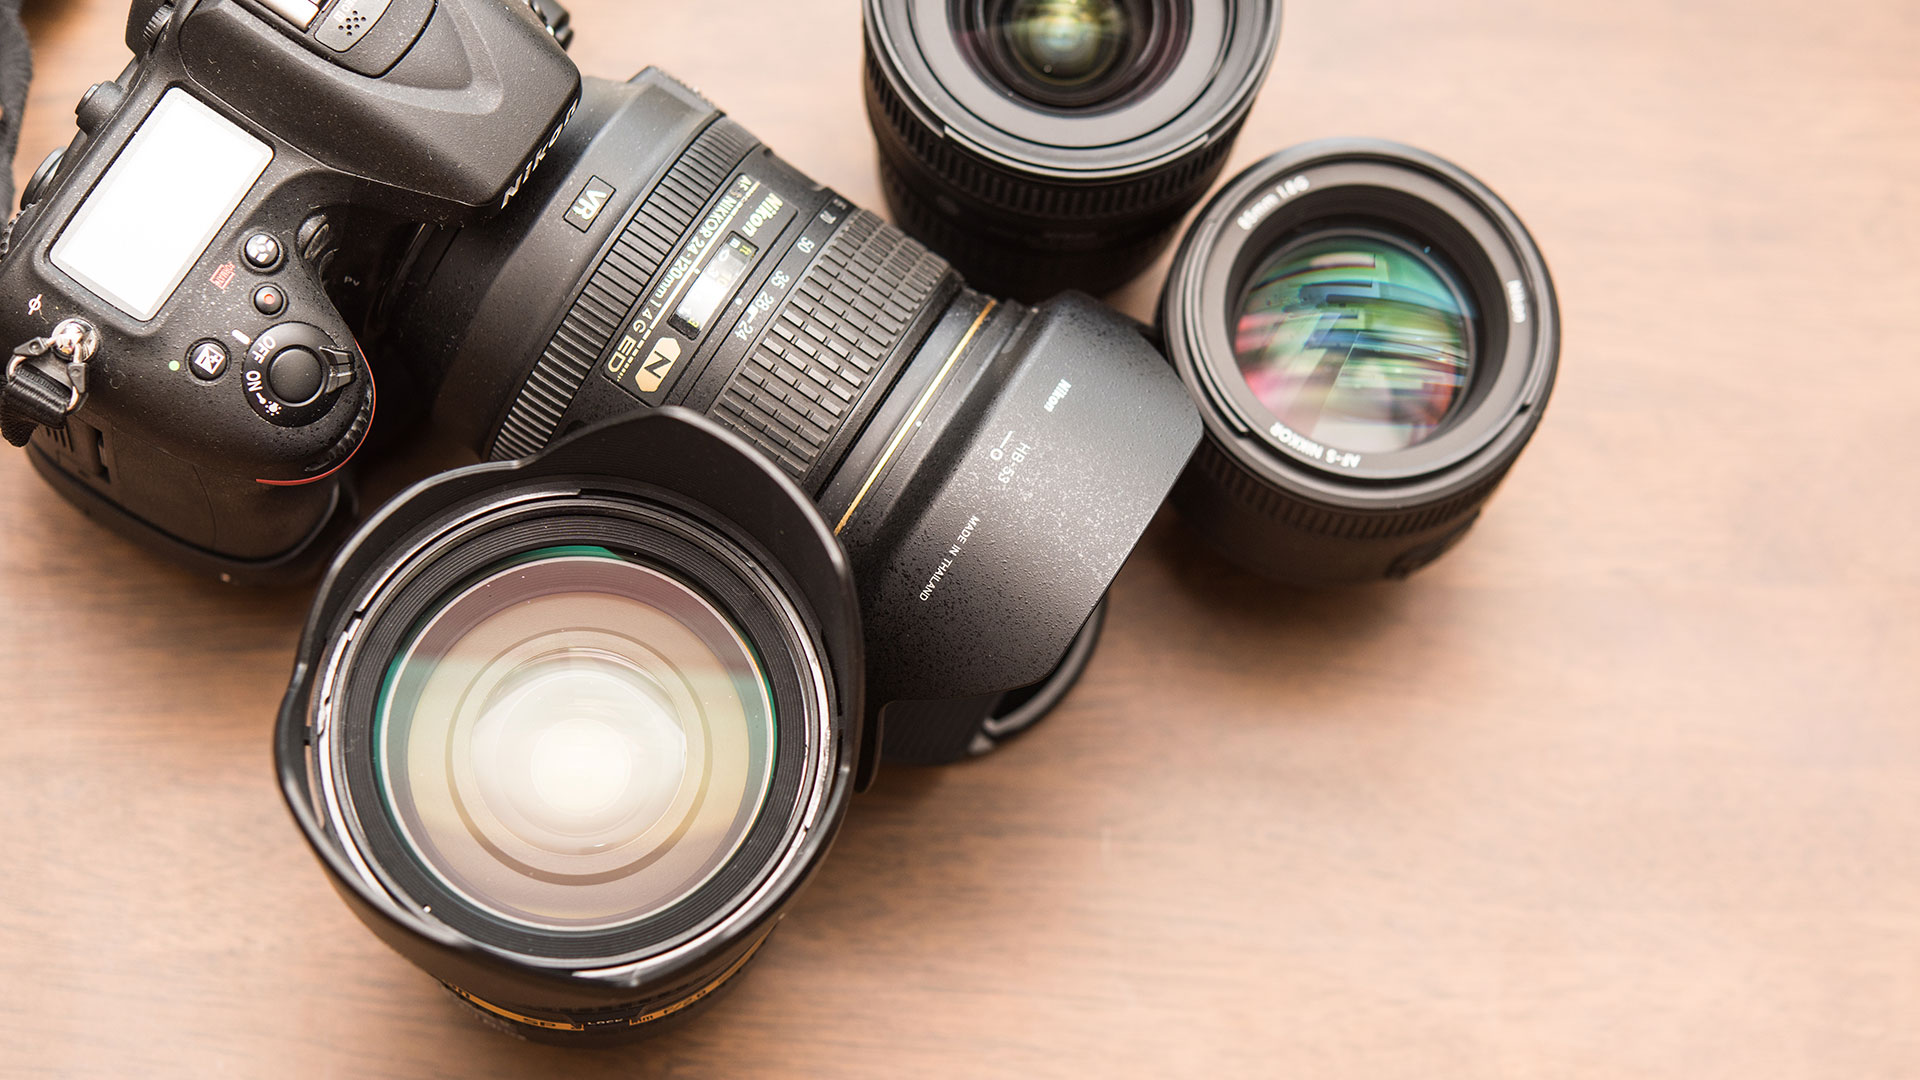 Photography 101: The difference between fixed and variable aperture | Photofocus